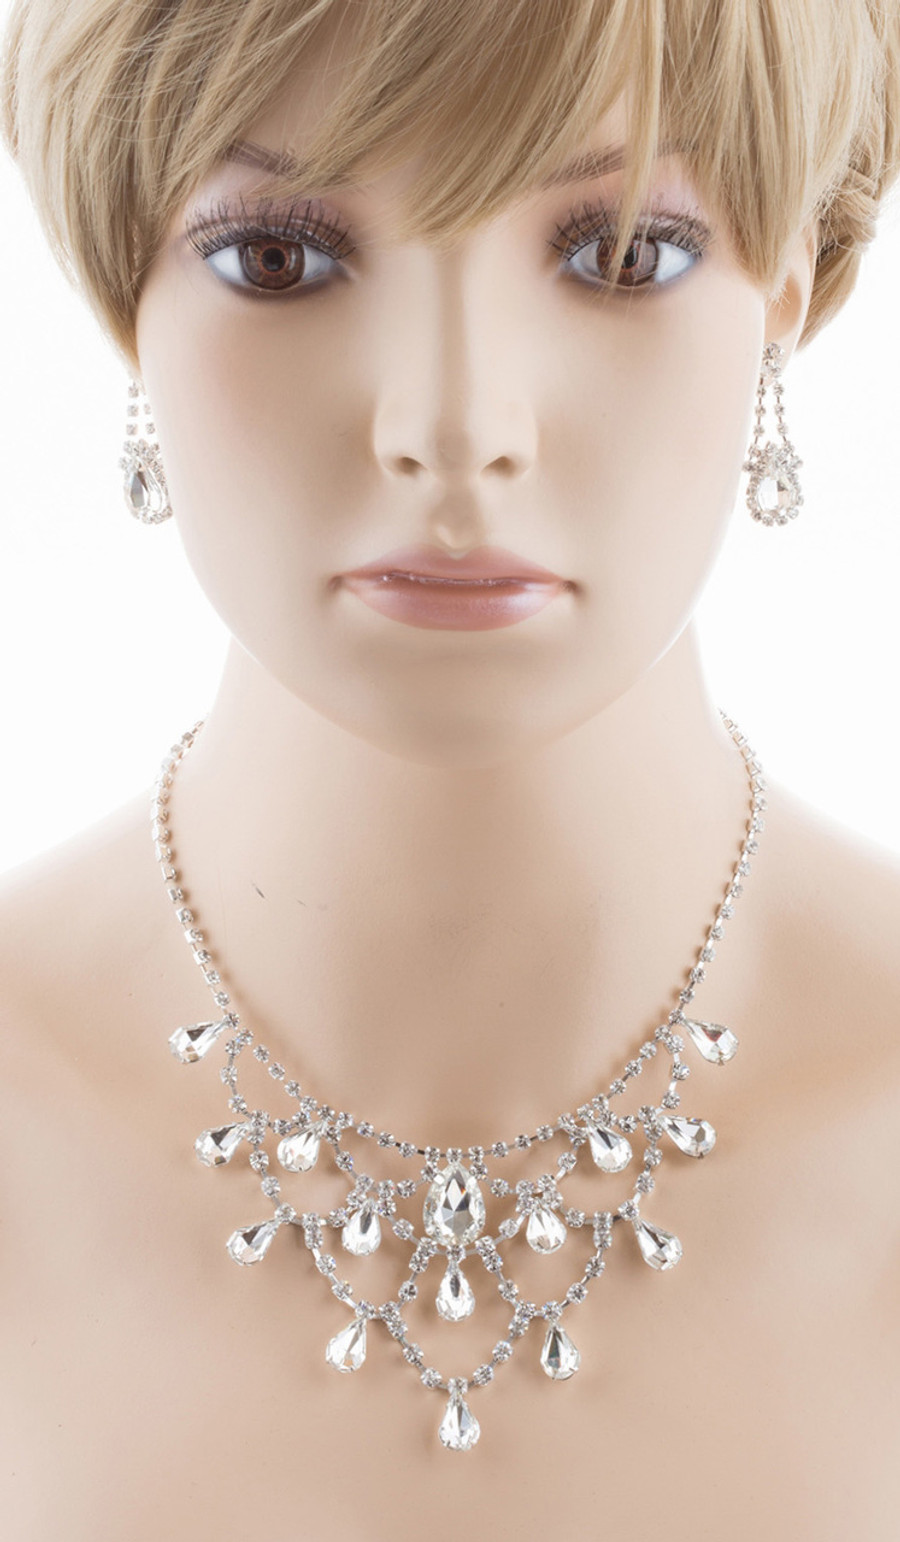 Bridal Wedding Jewelry Set Crystal Rhinestone Stunning Dressy Style Necklace